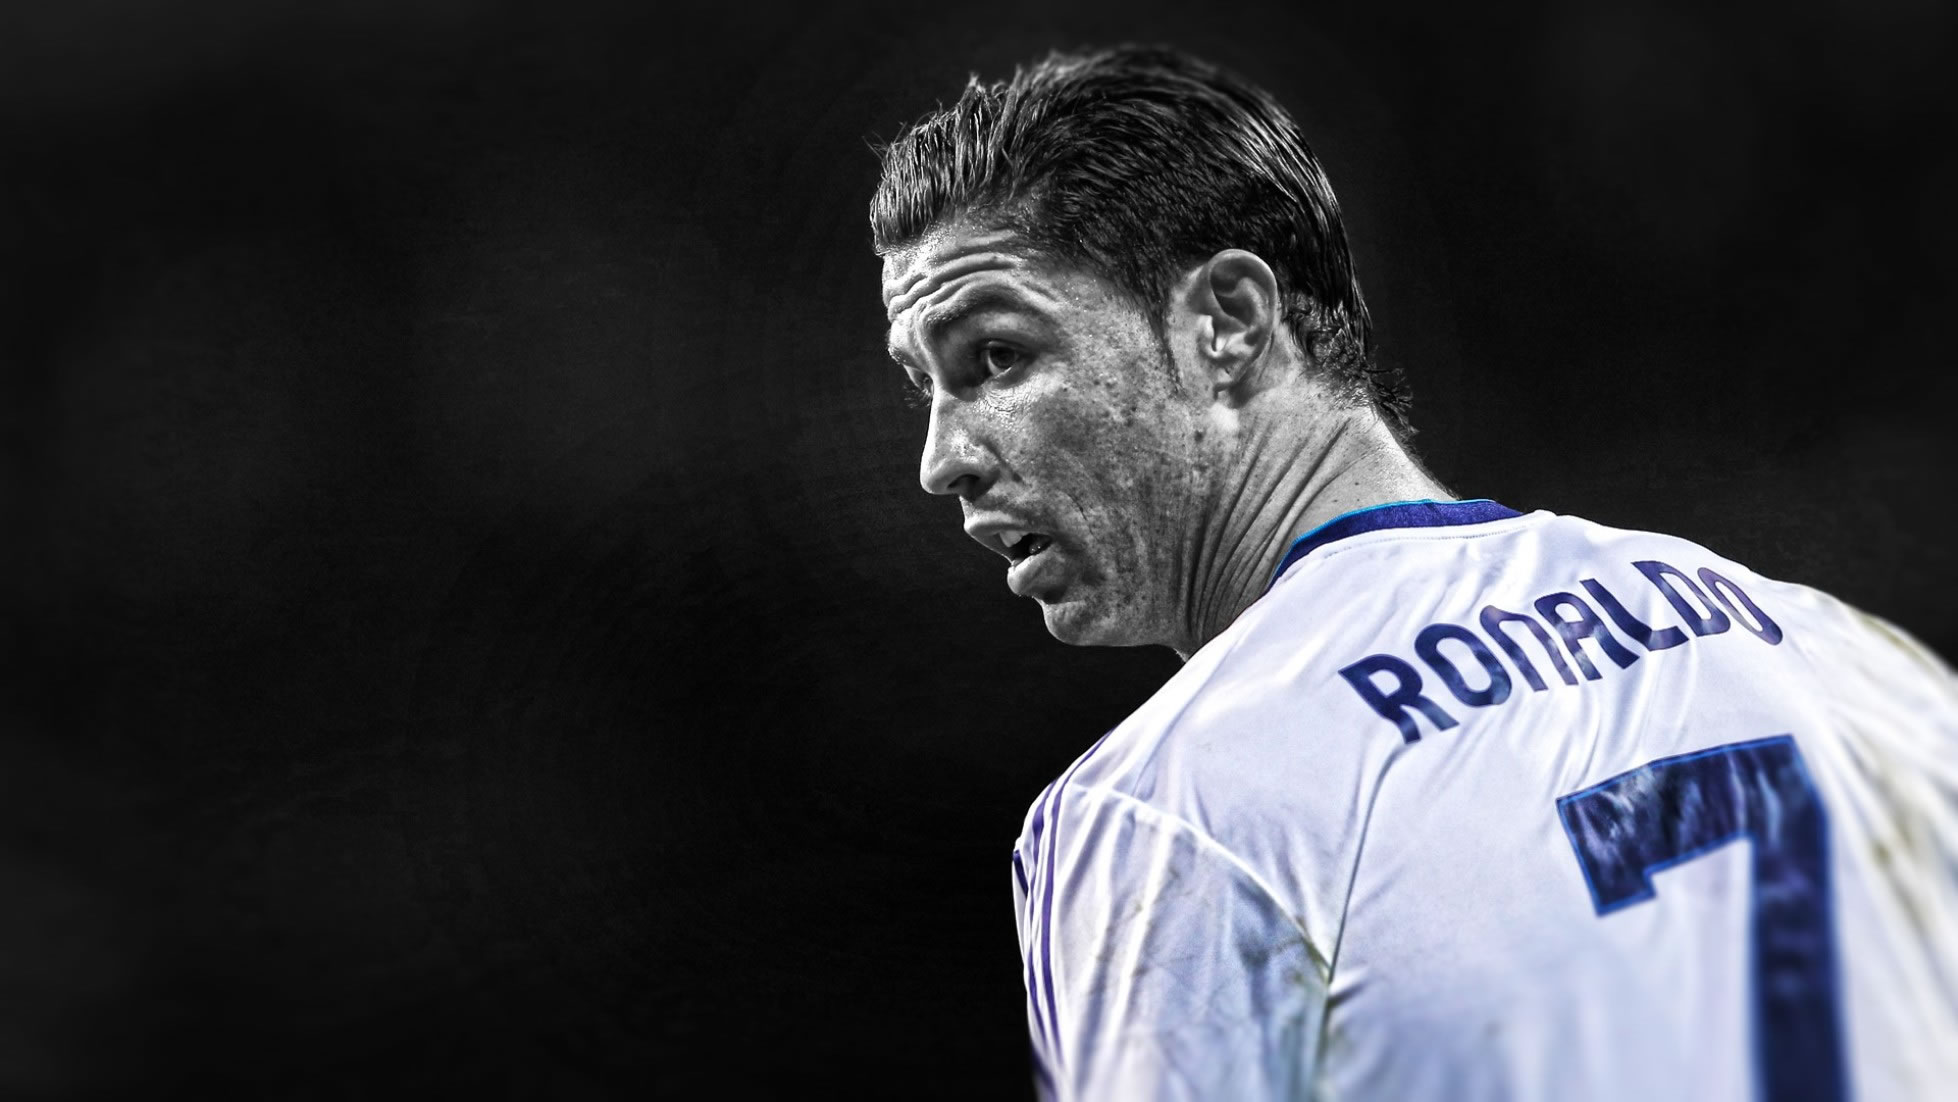 cristiano ronaldo wallpapers - cr7 hd wallpaper